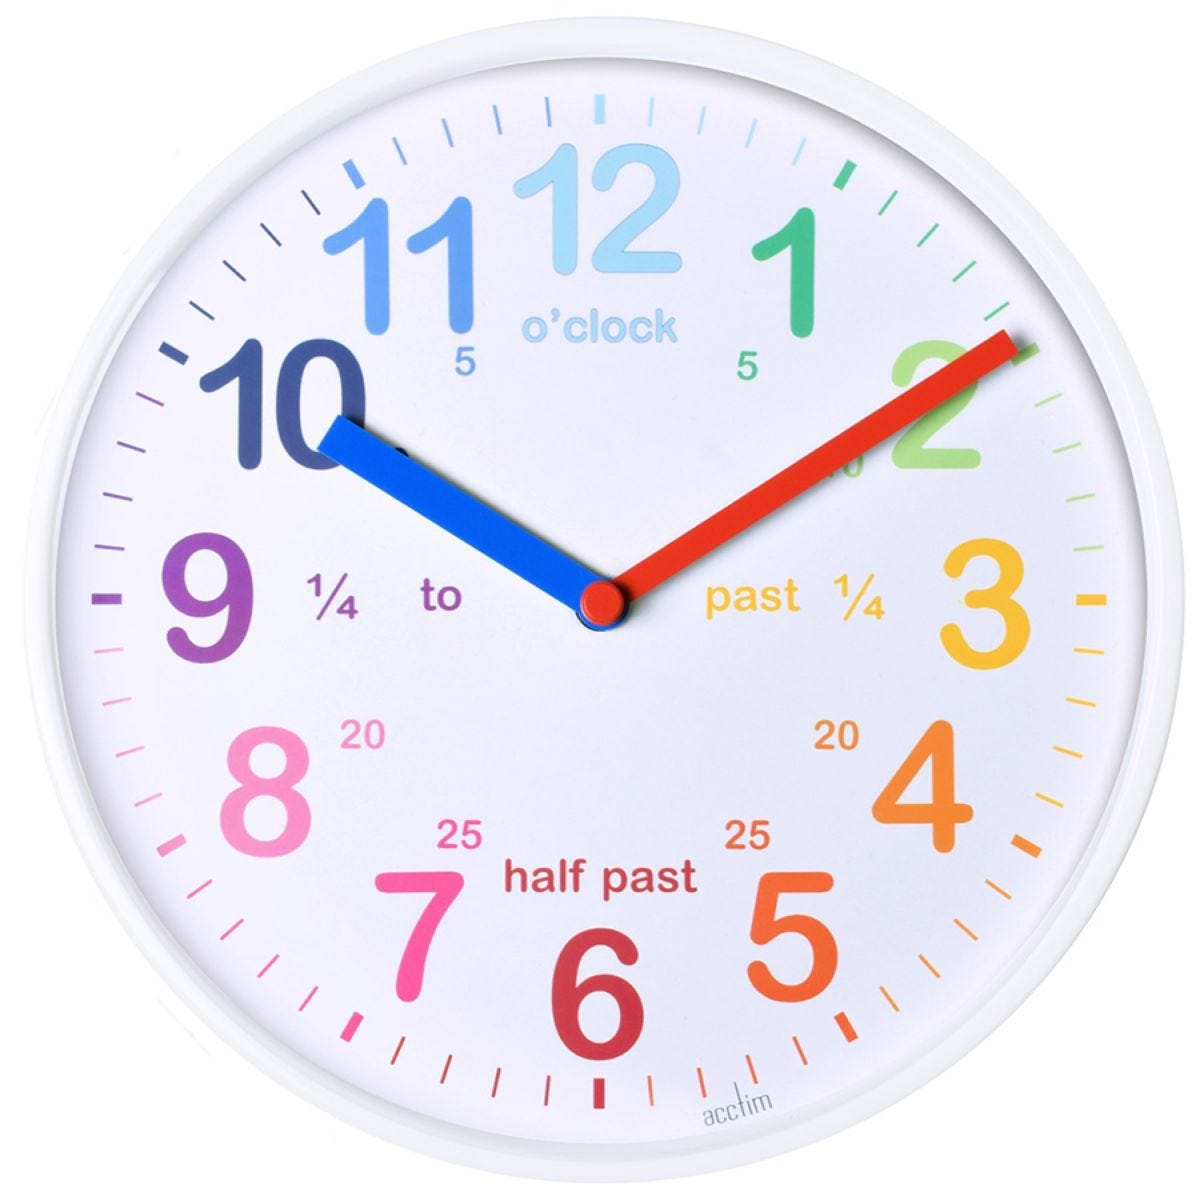 Wickford Wall Clock - White